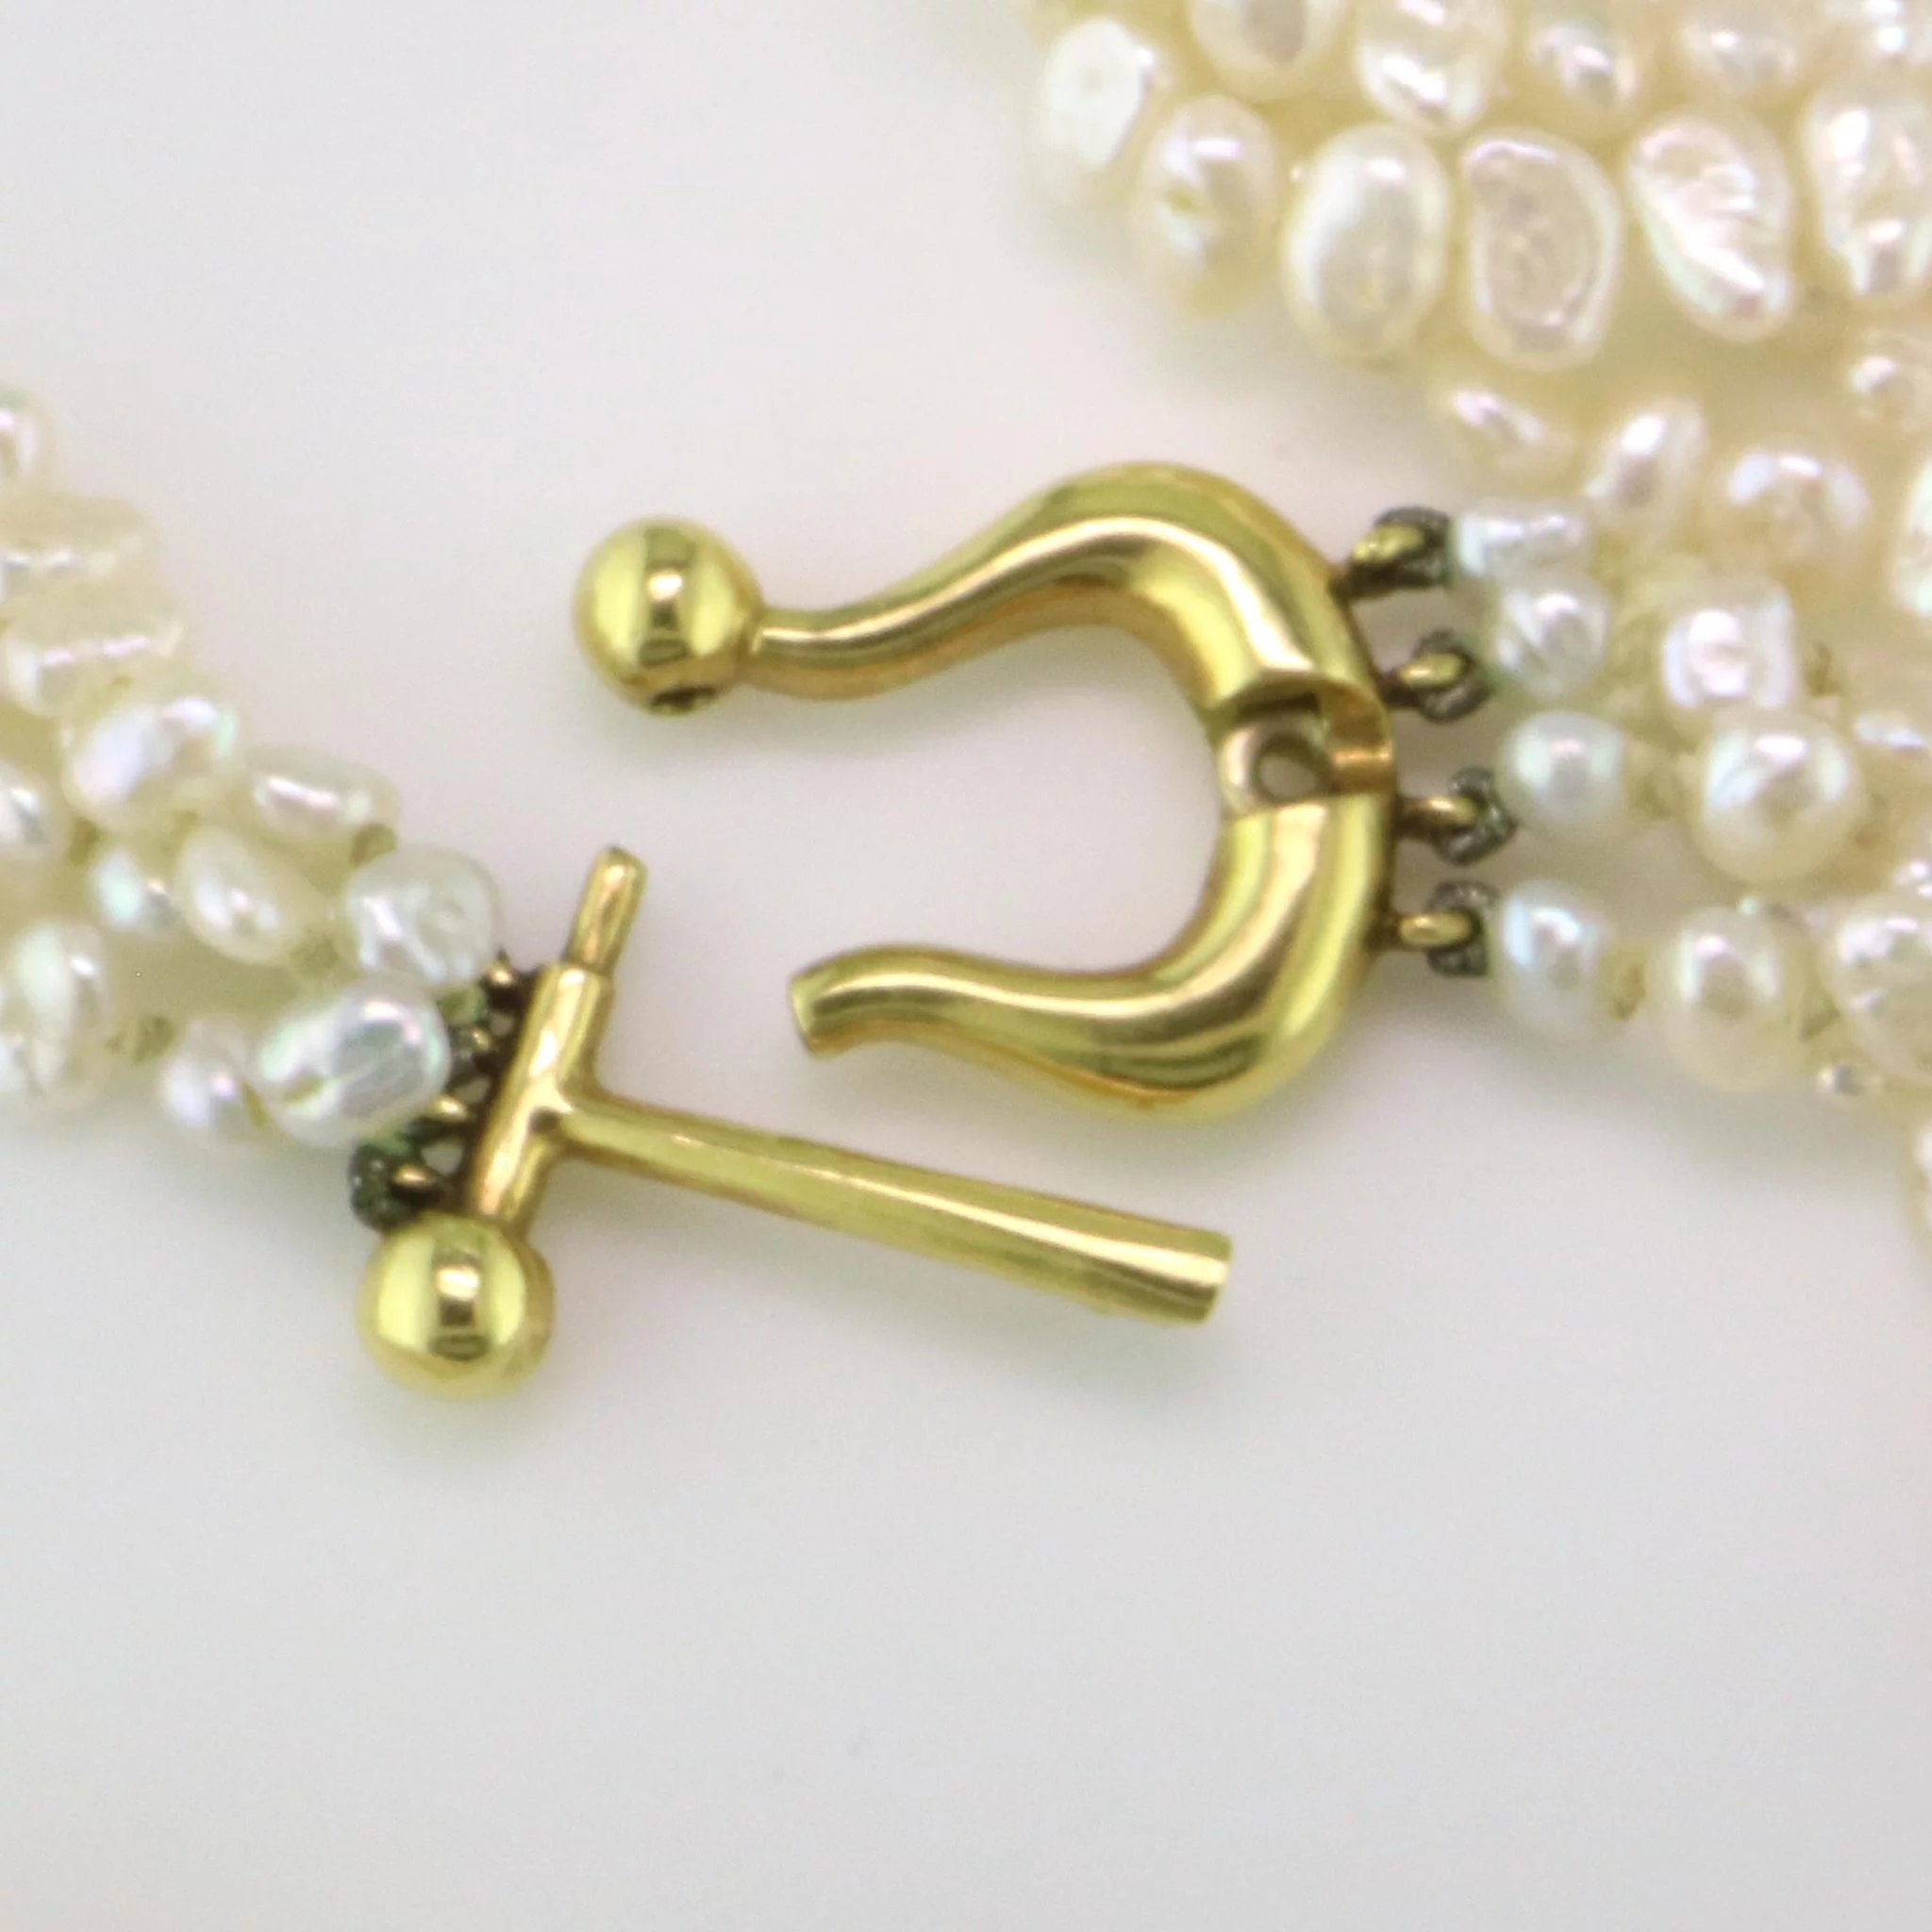 e3a837783c908 Tiffany 18K & Pearl Necklace by Paloma Picasso